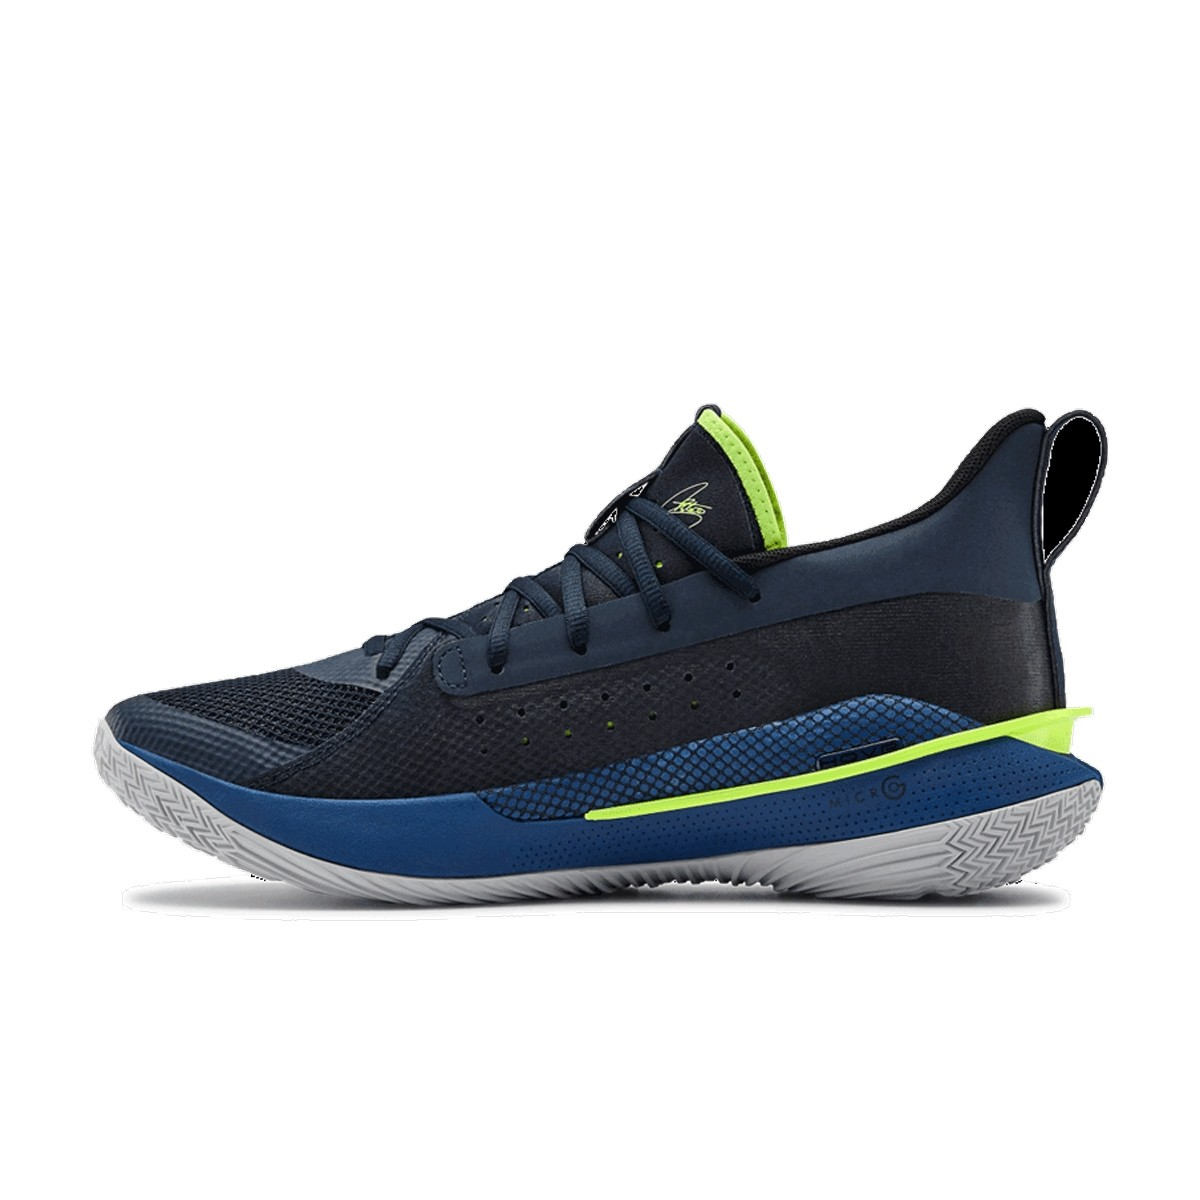 Under Armour Curry 7 'Dub Nation'-3021258-405